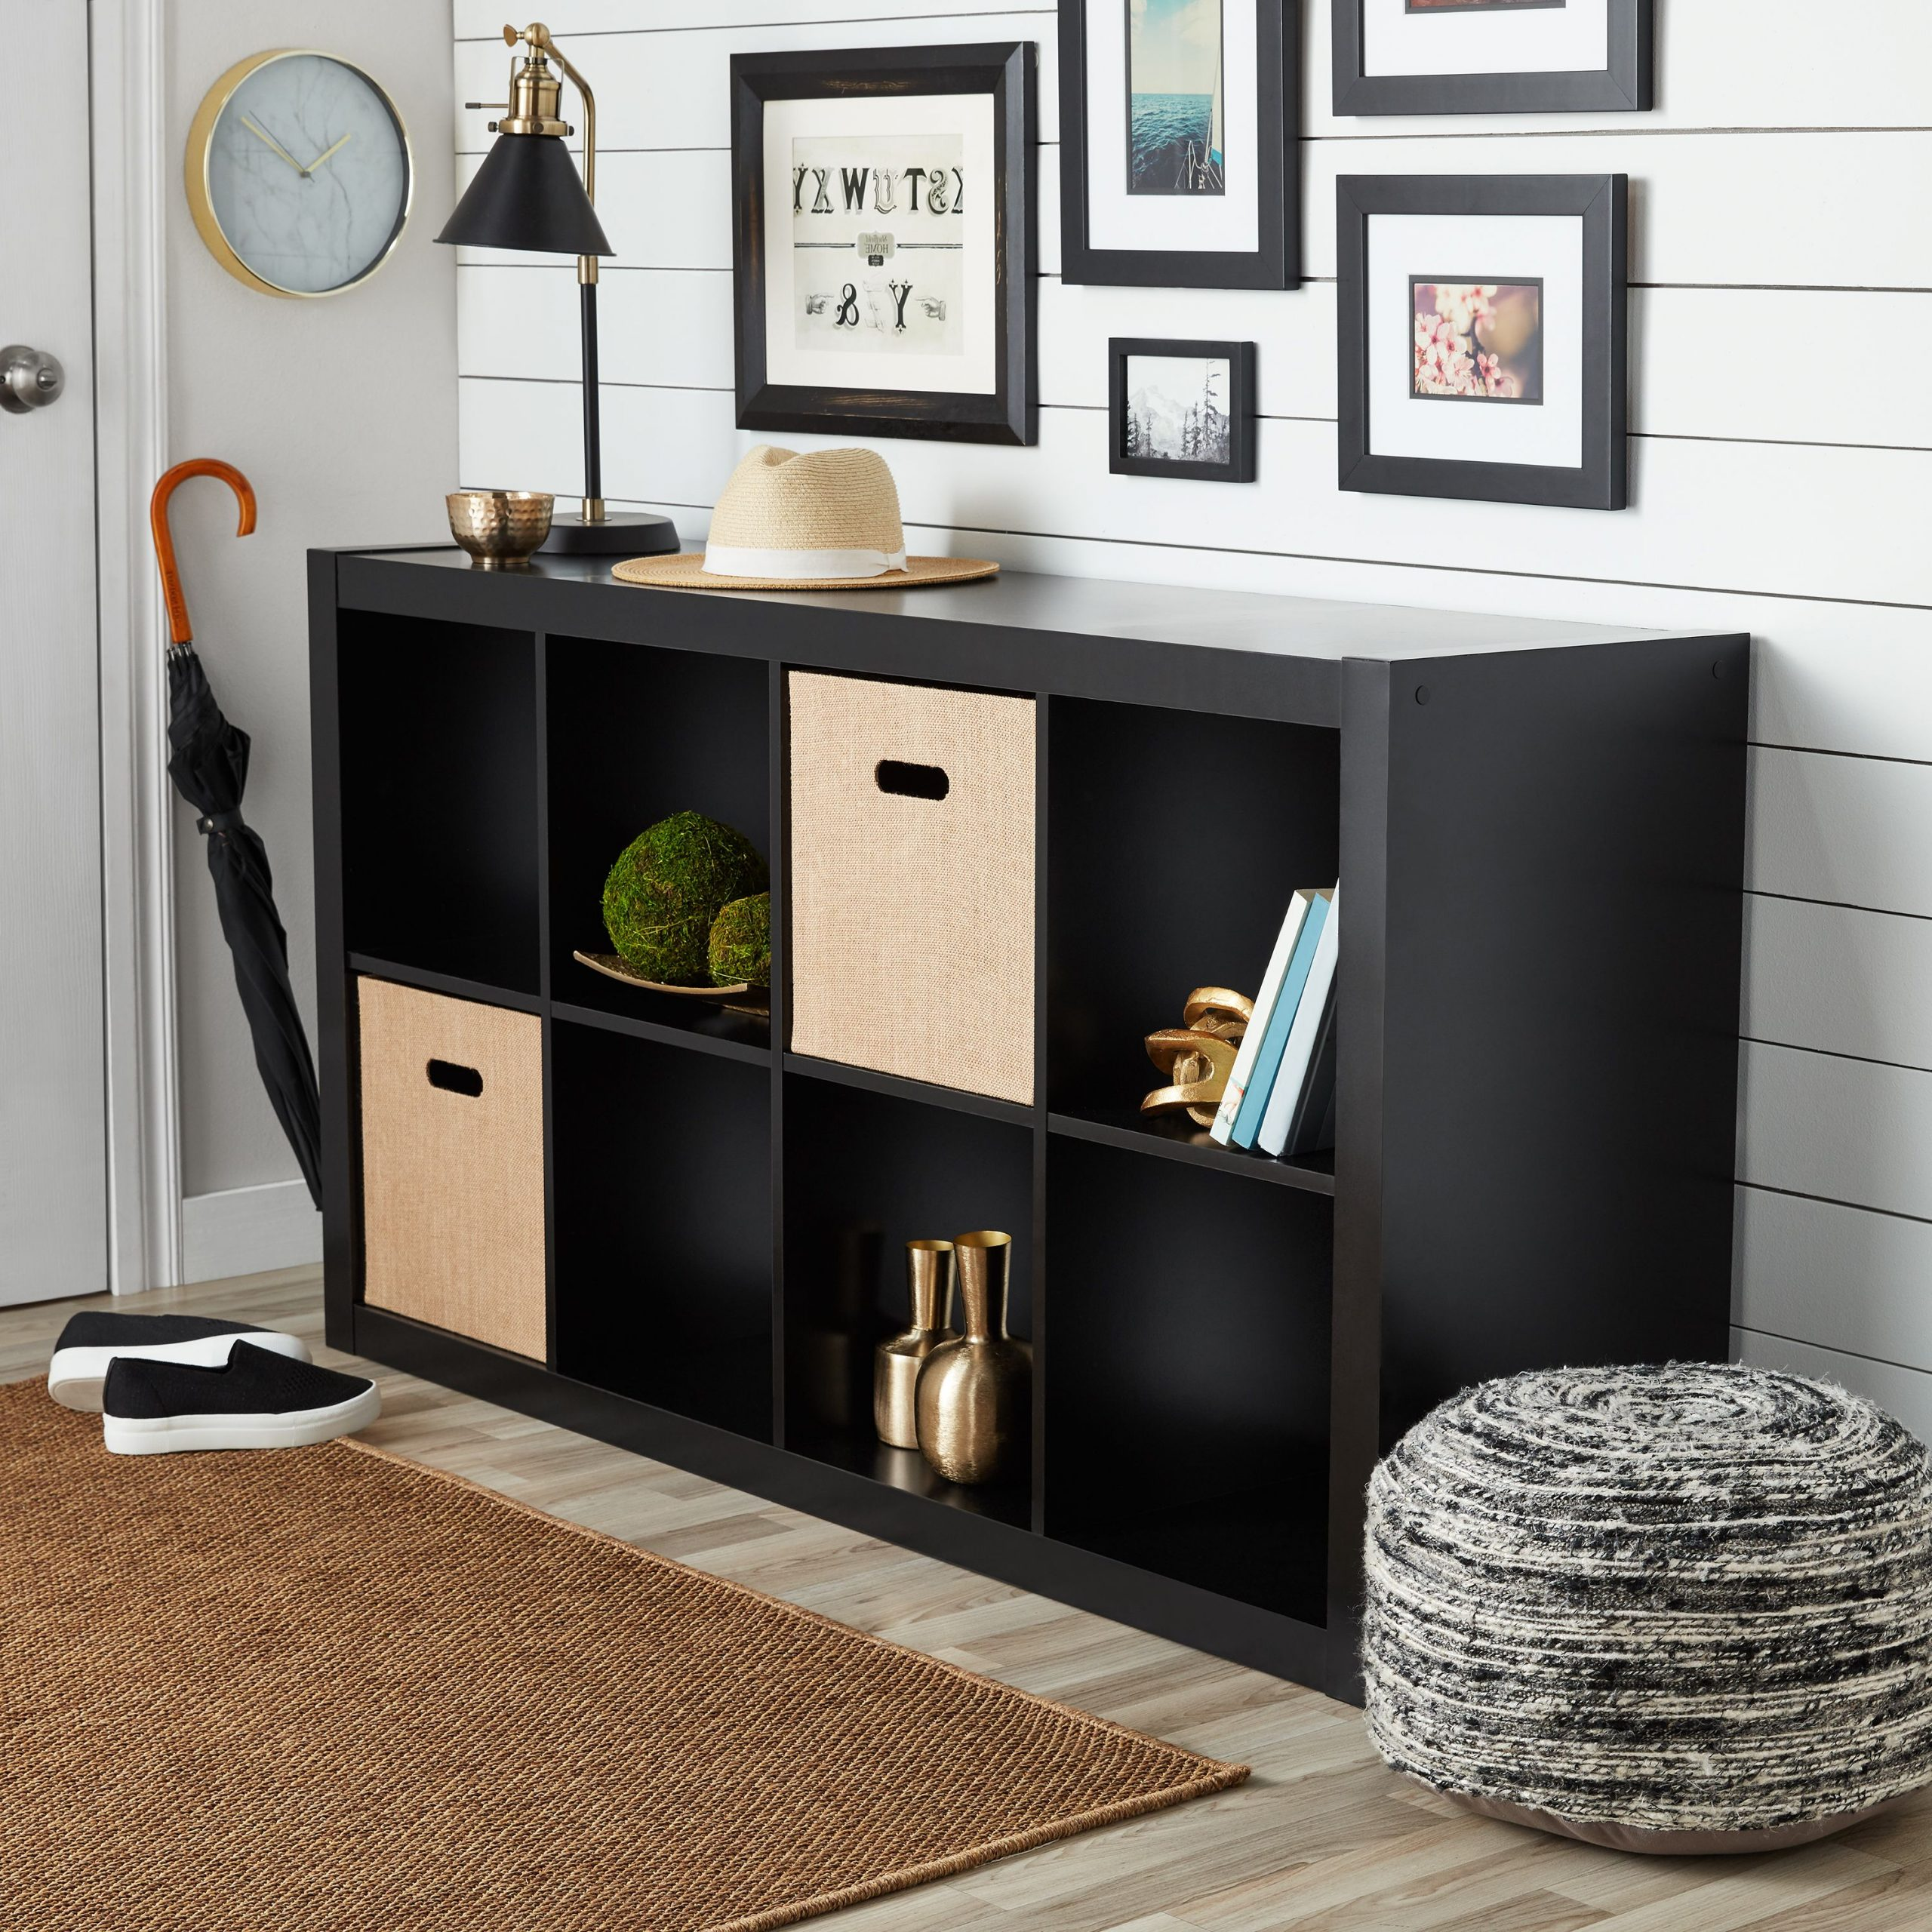 Better Homes & Gardens 8 Cube Organizer, Solid Black Intended For Most Current Mainstays 4 Cube Tv Stands In Multiple Finishes (View 2 of 10)